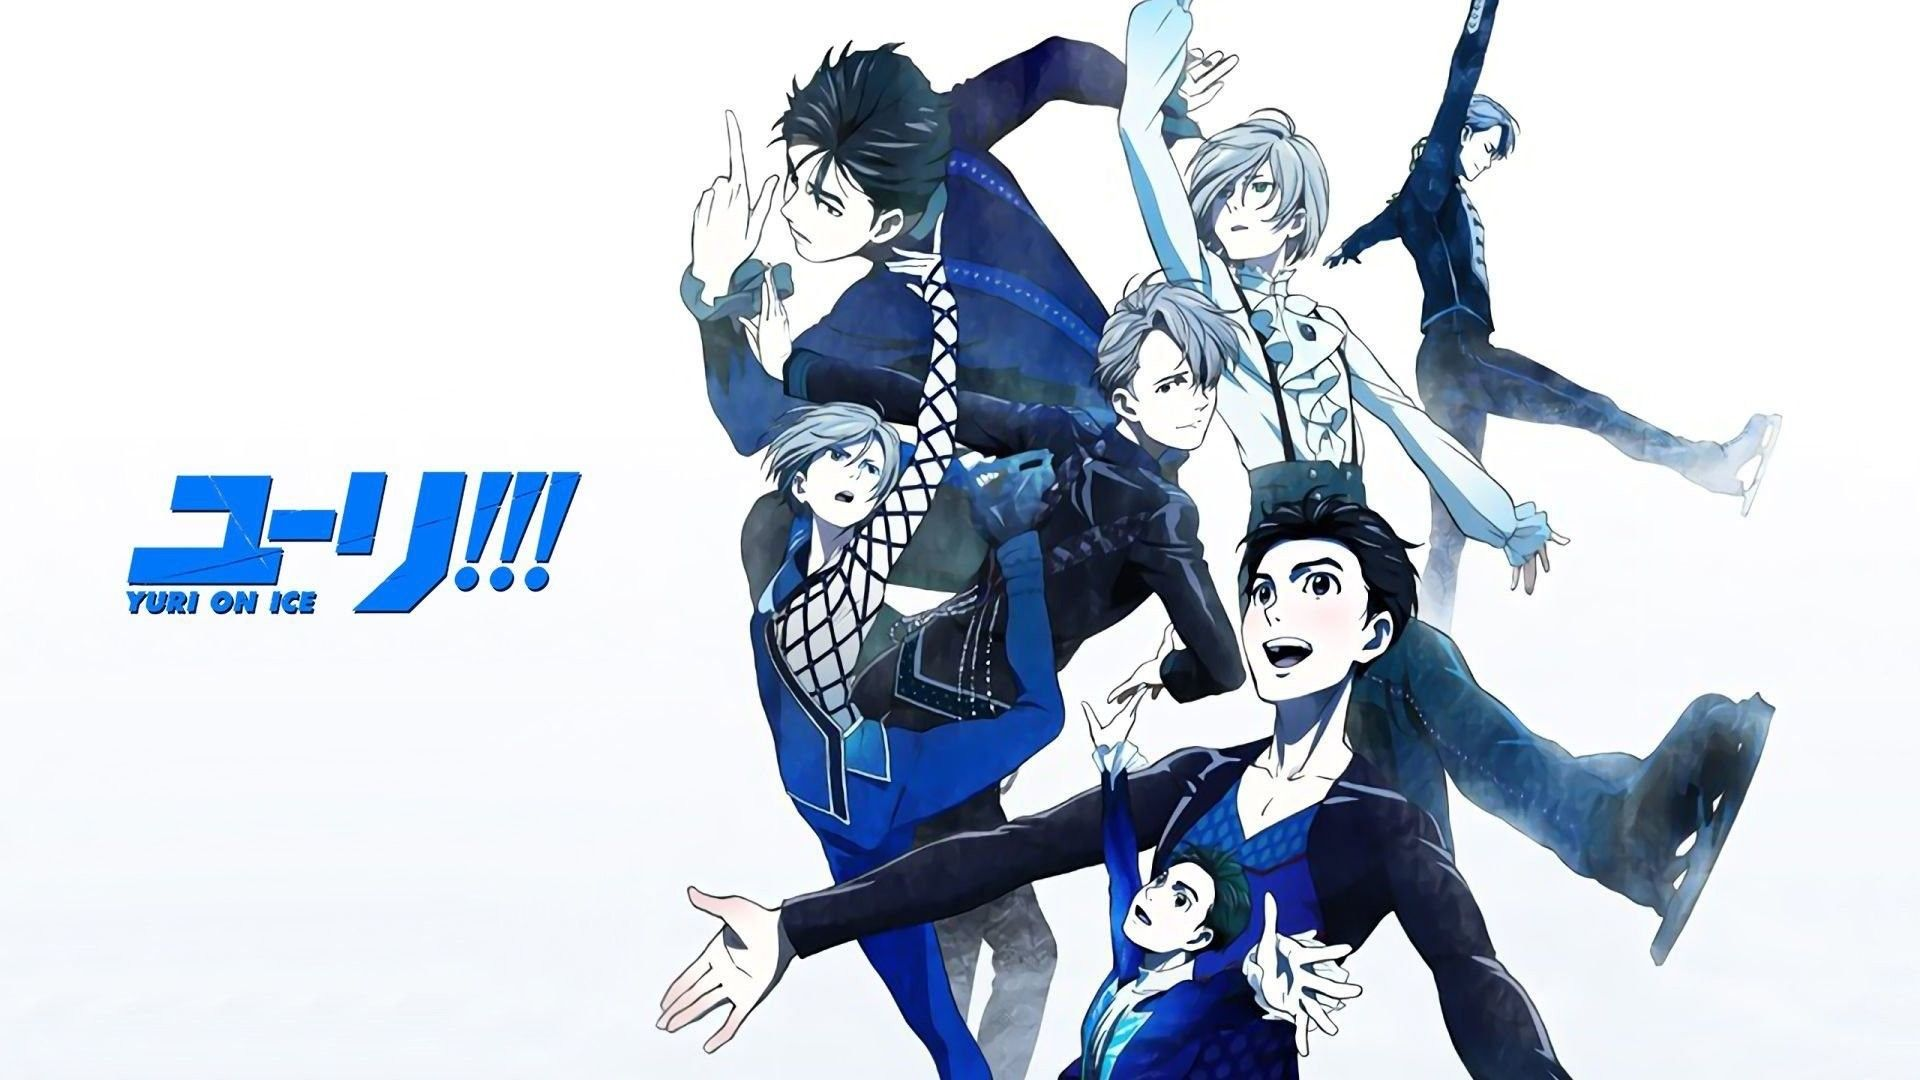 Yuri On Ice Wallpapers Top Free Yuri On Ice Backgrounds